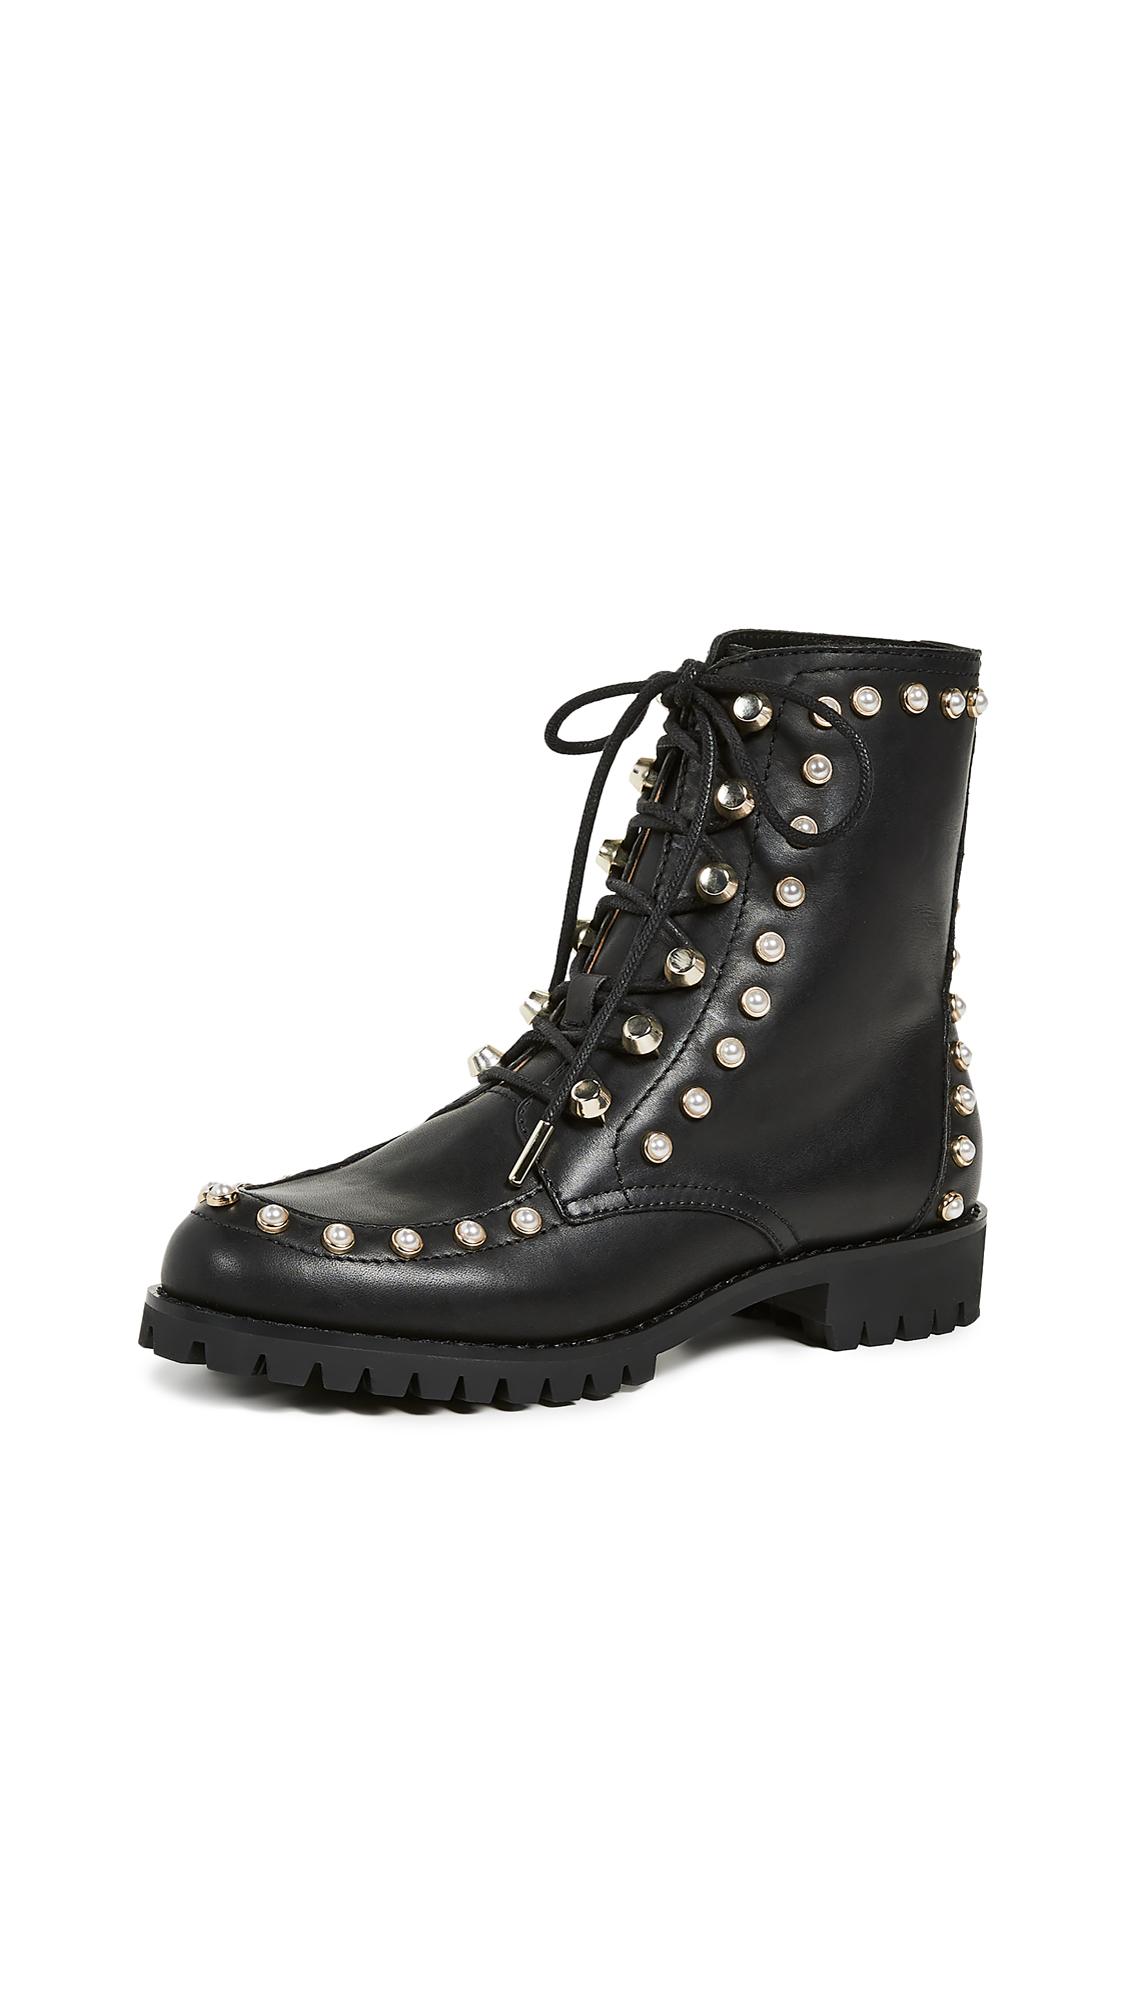 Joie Halyn Boots - Black